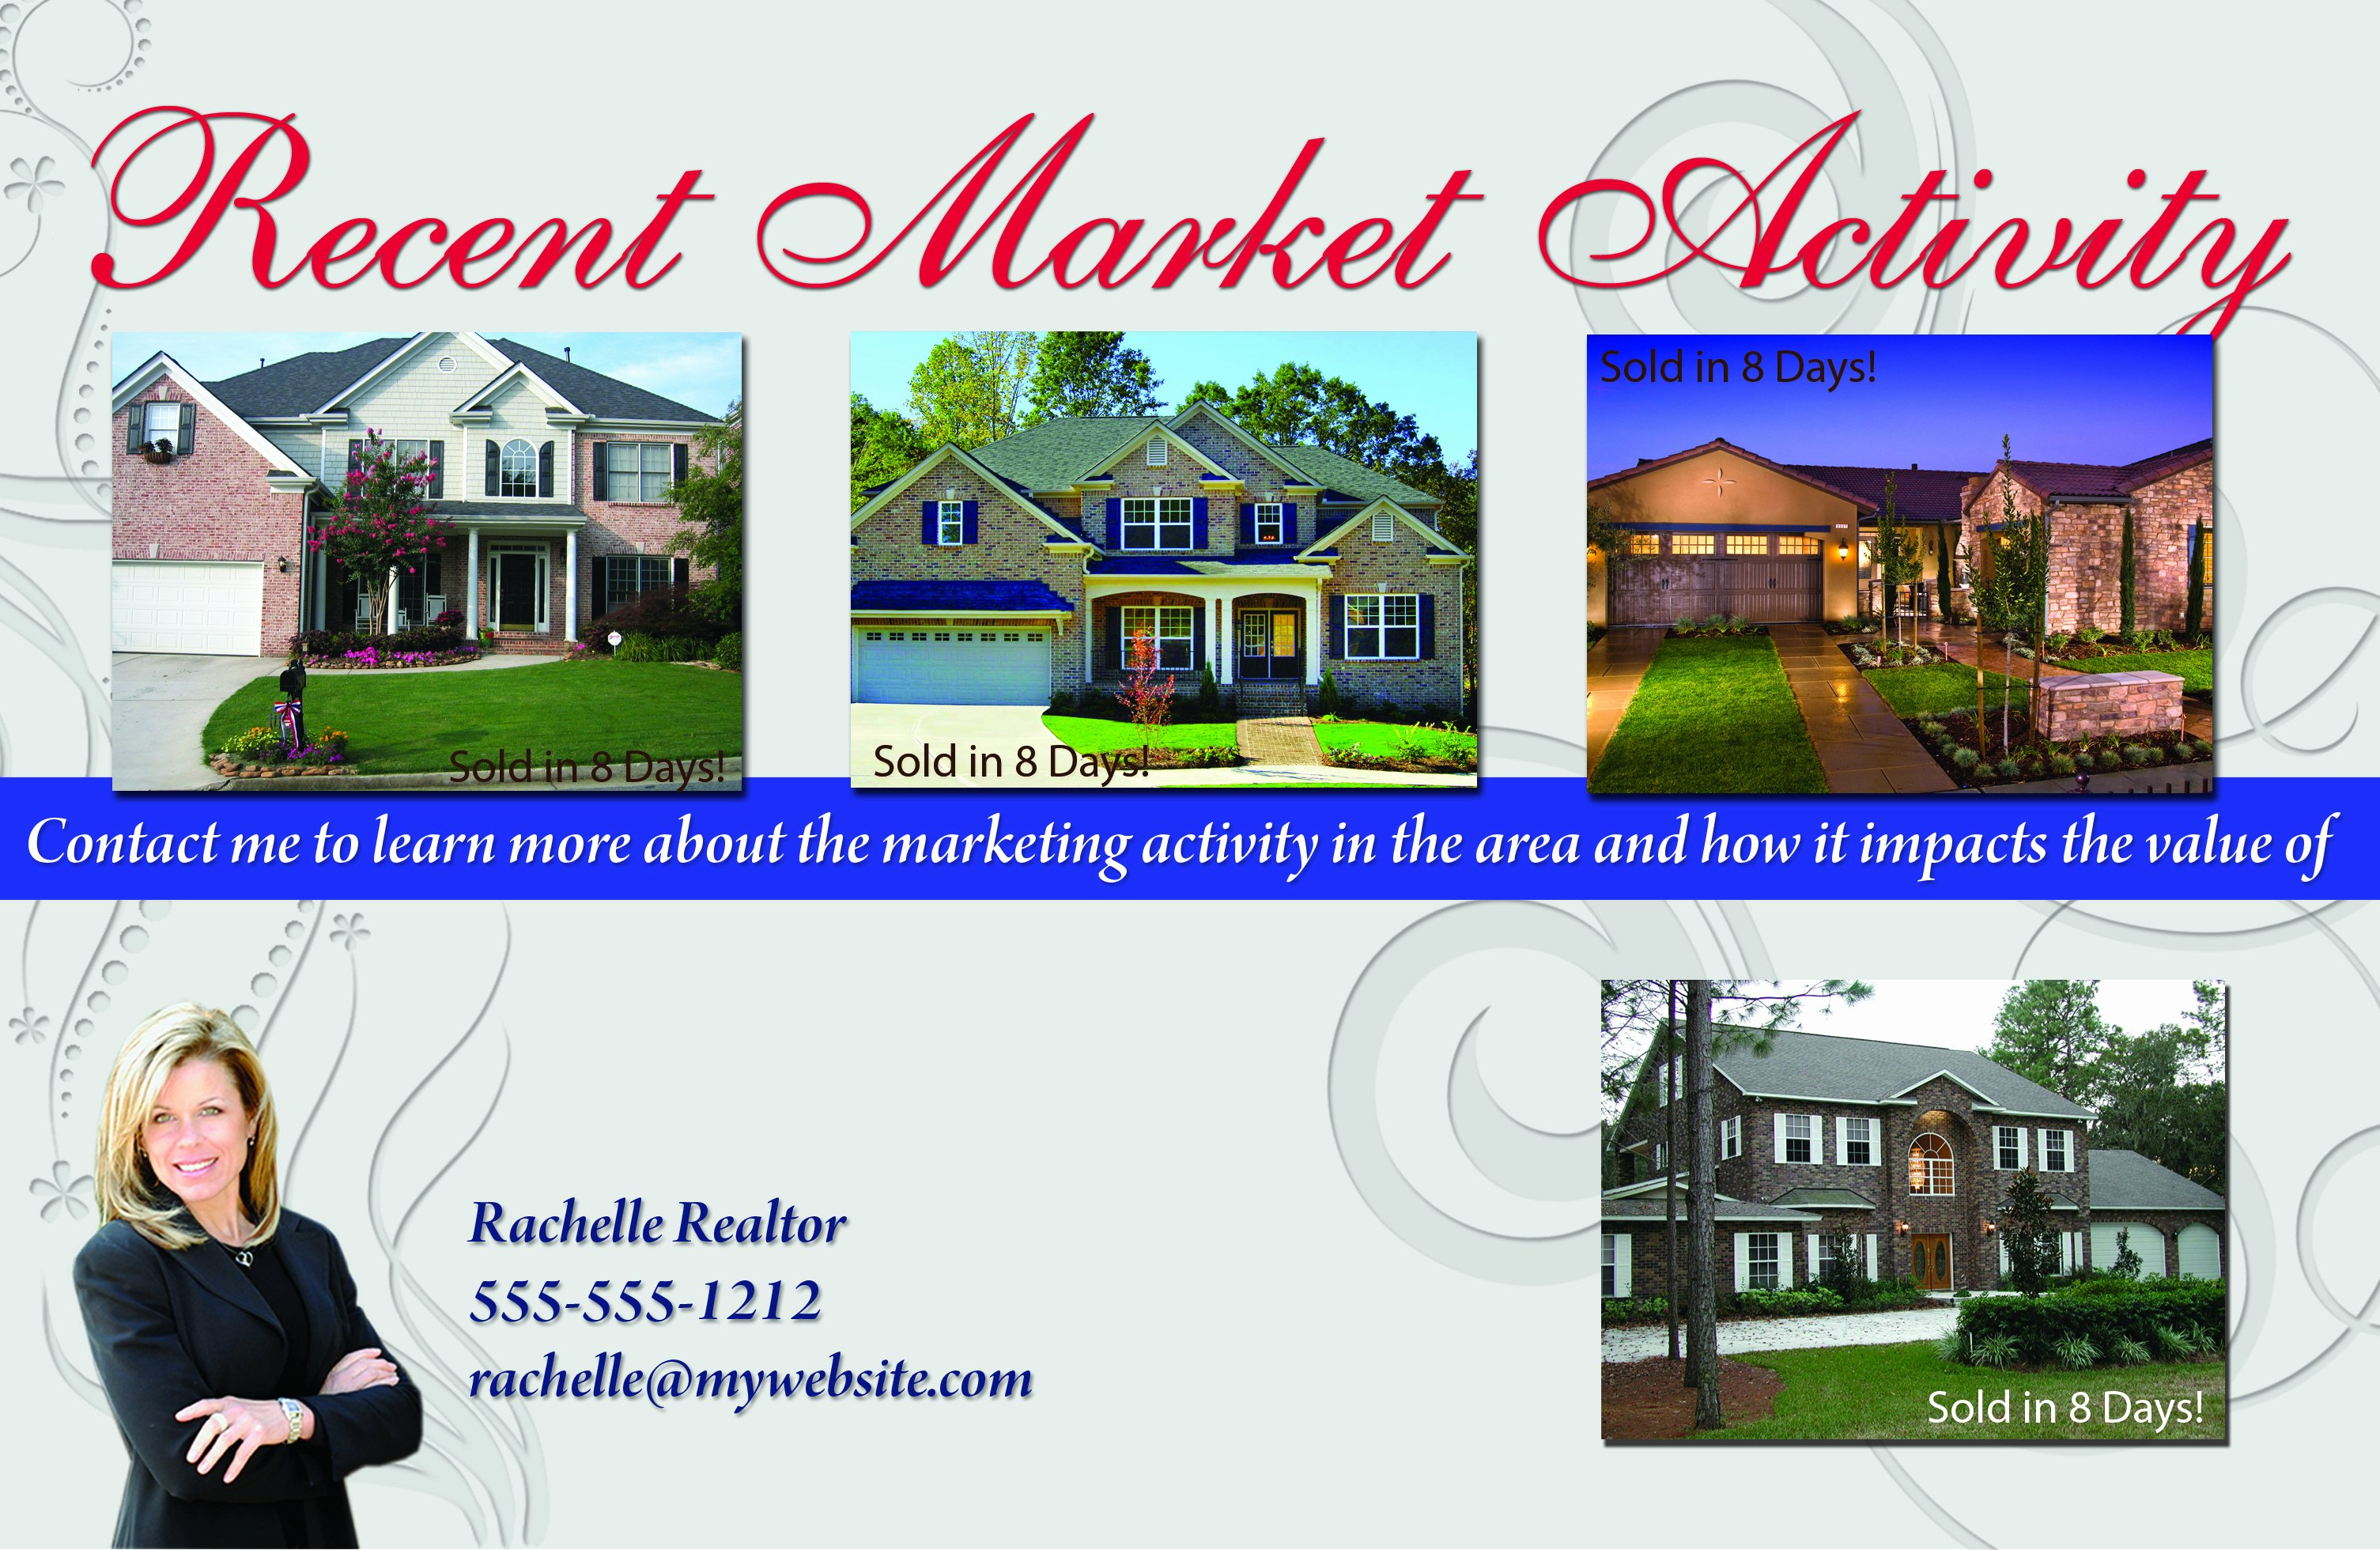 Real Estate Marketing Flyers Best Of Real Estate Marketing Postcards Flyers & Brochures for